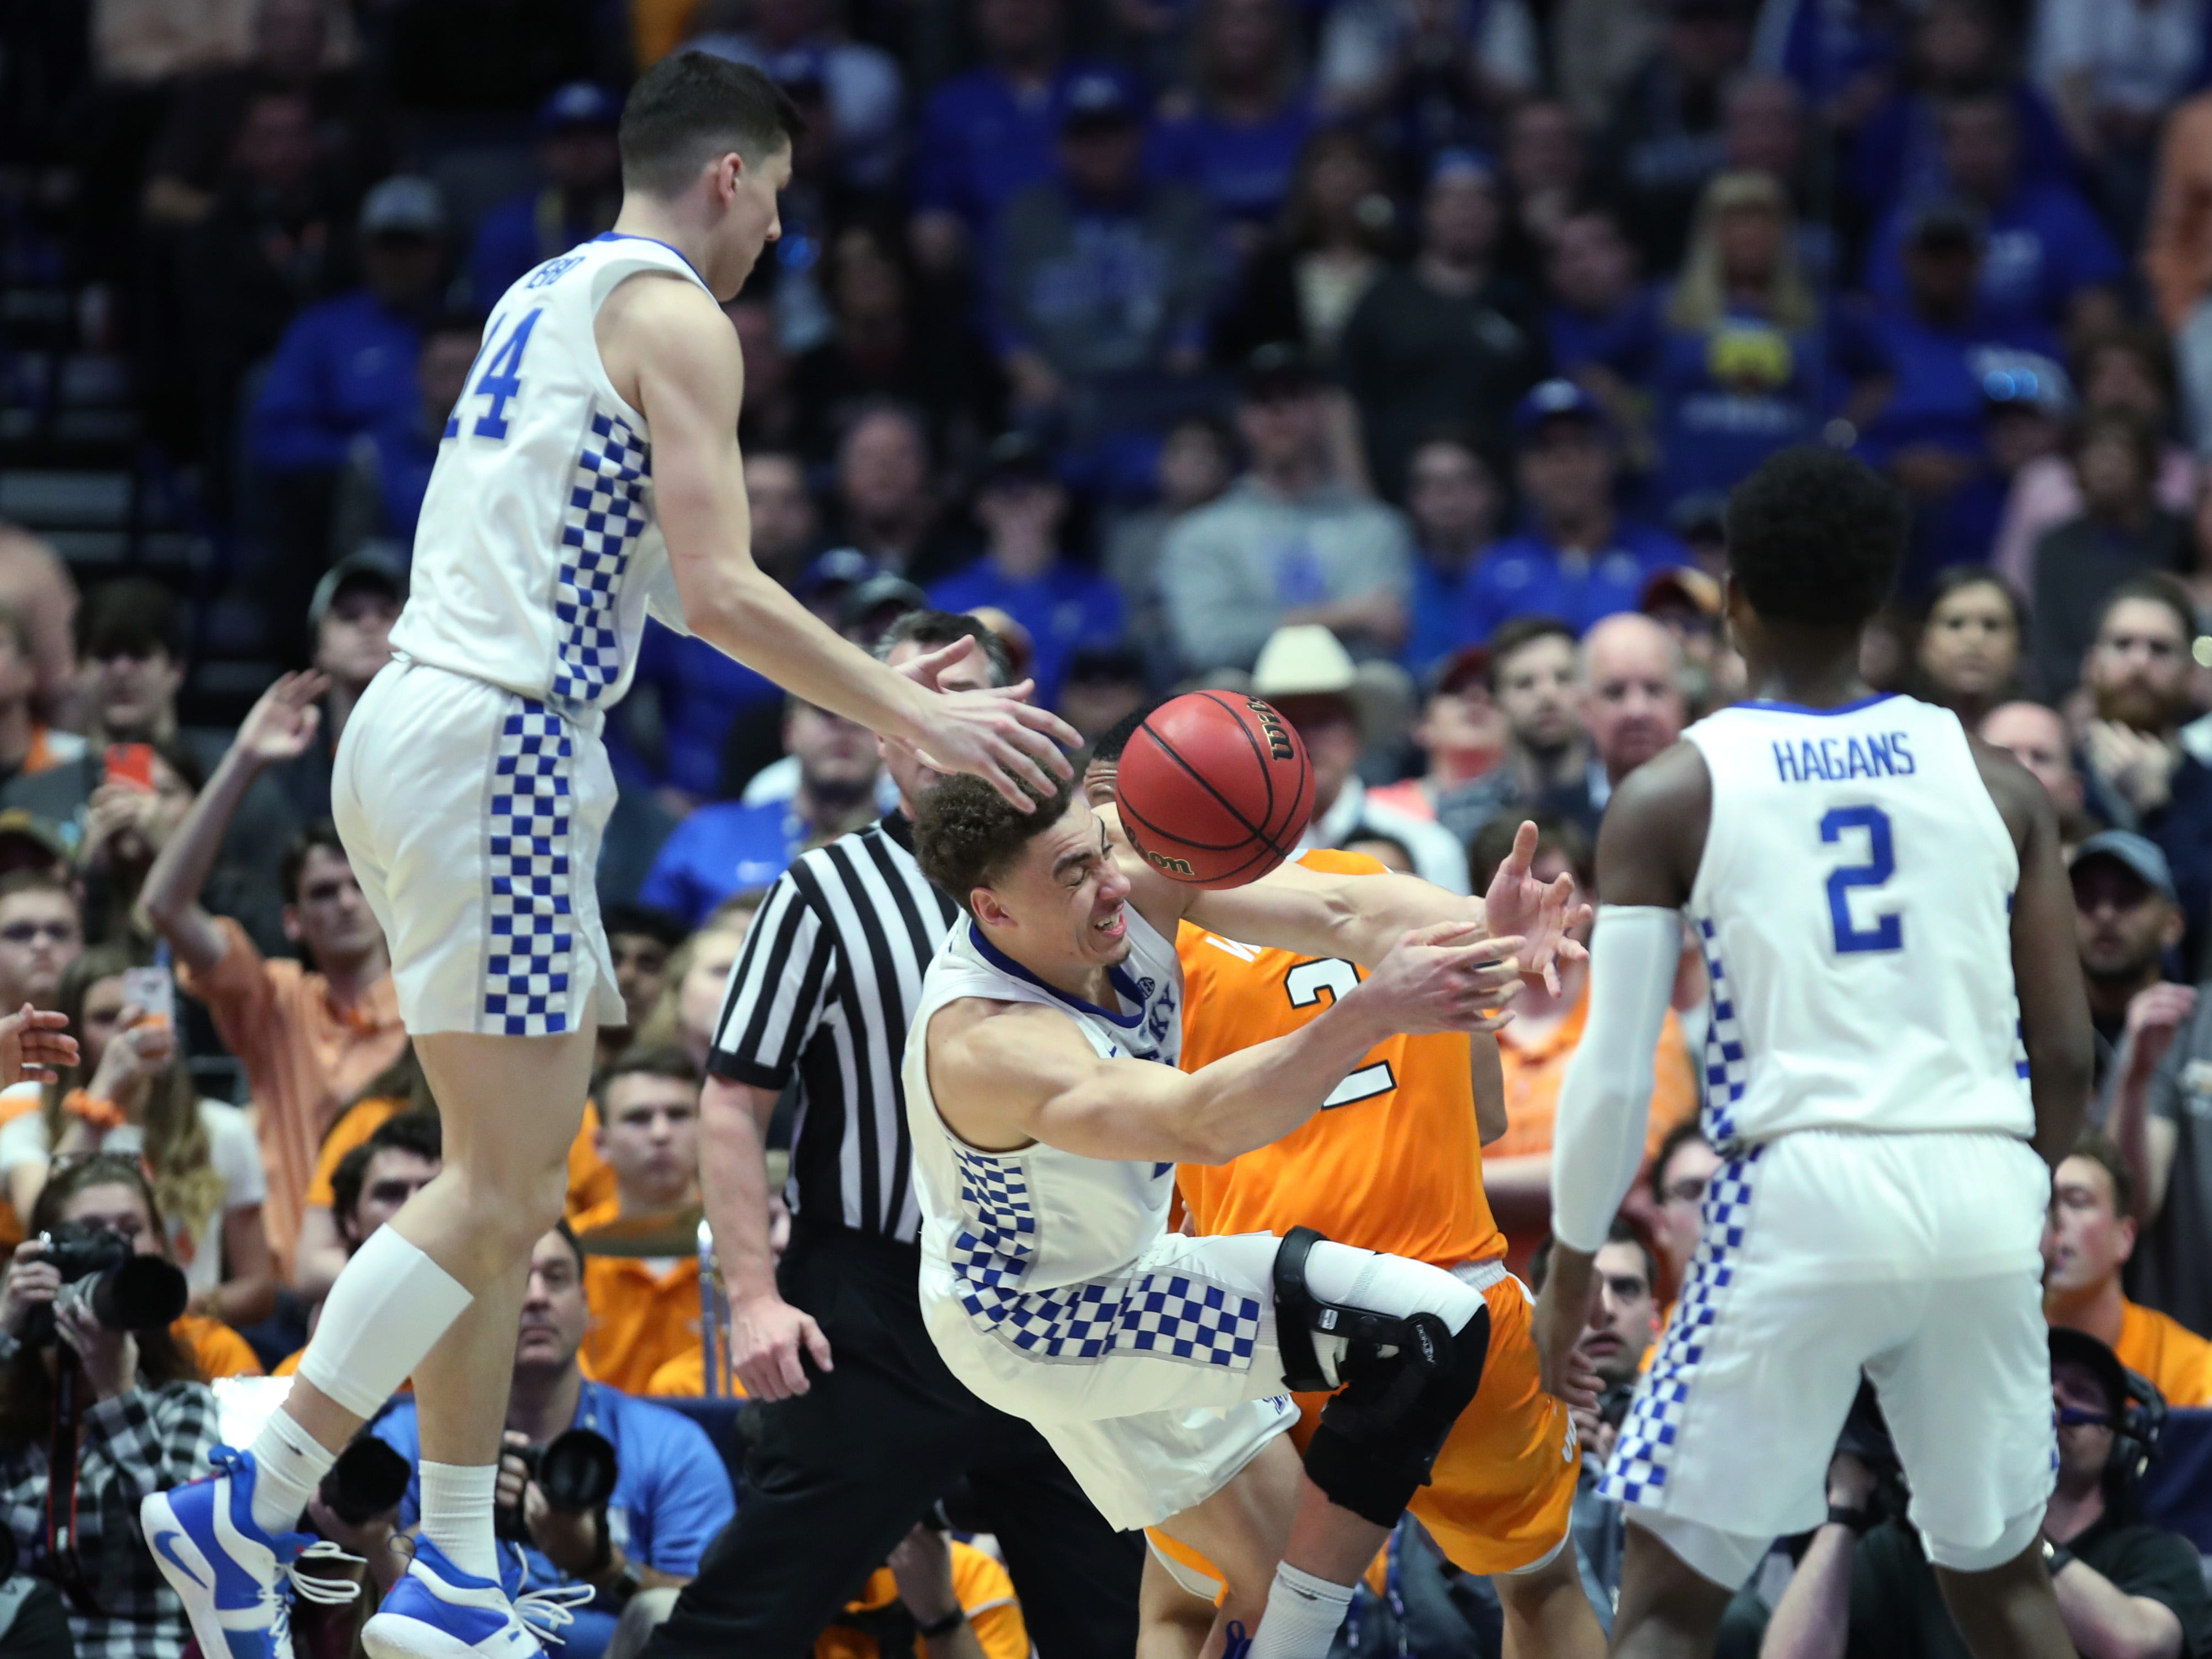 Kentucky guard Tyler Herro (14), forward Reid Travis (22) and guard Ashton Hagans (2) try to get a loose ball during the second half of the SEC Men's Basketball Tournament game against Tennessee at Bridgestone Arena in Nashville, Tenn., Saturday, March 16, 2019.